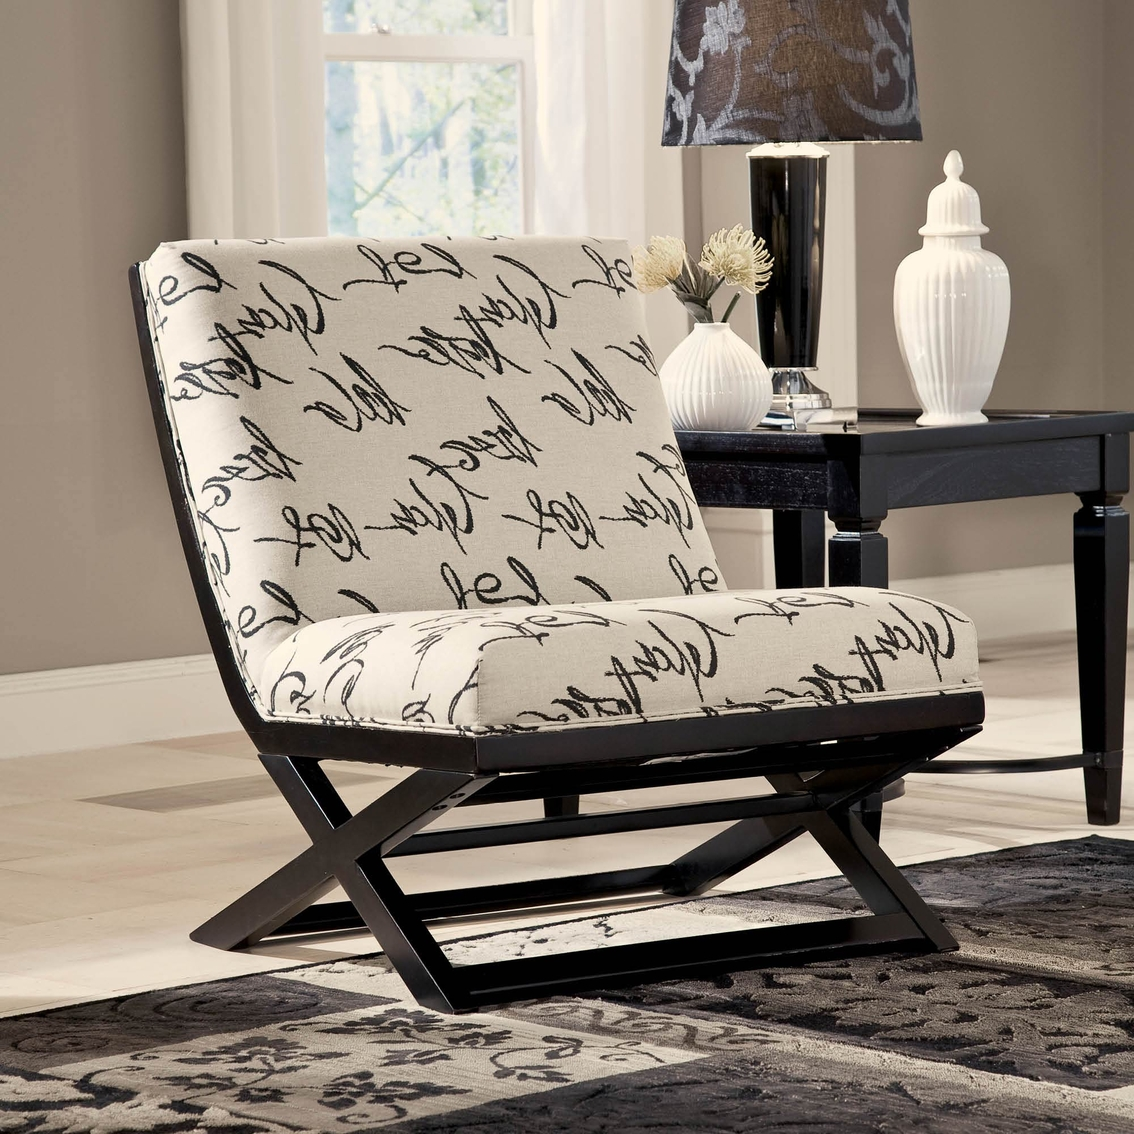 Amazing Signature Design By Ashley Levon Showood Accent Chair Download Free Architecture Designs Scobabritishbridgeorg